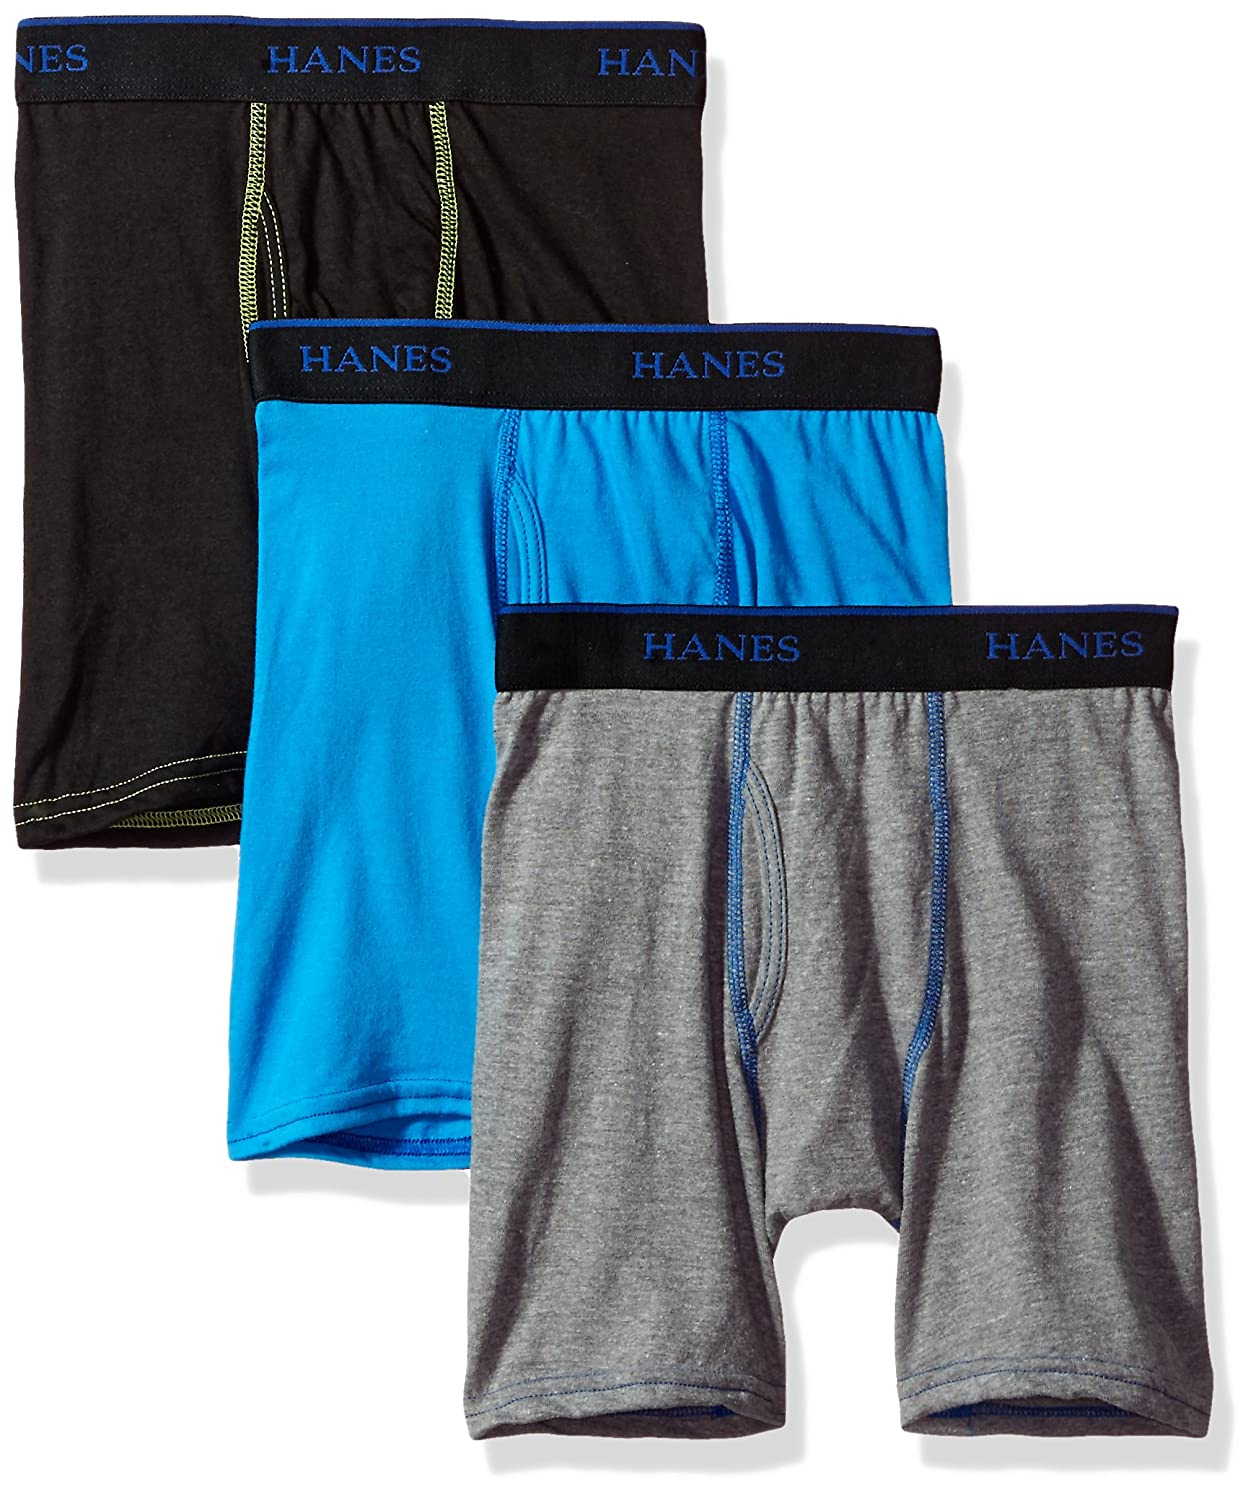 Hanes Big Boys Ultimate X-Temp Long Leg Boxer Briefs Hanes Boys 8-20 Underwear BULFX3